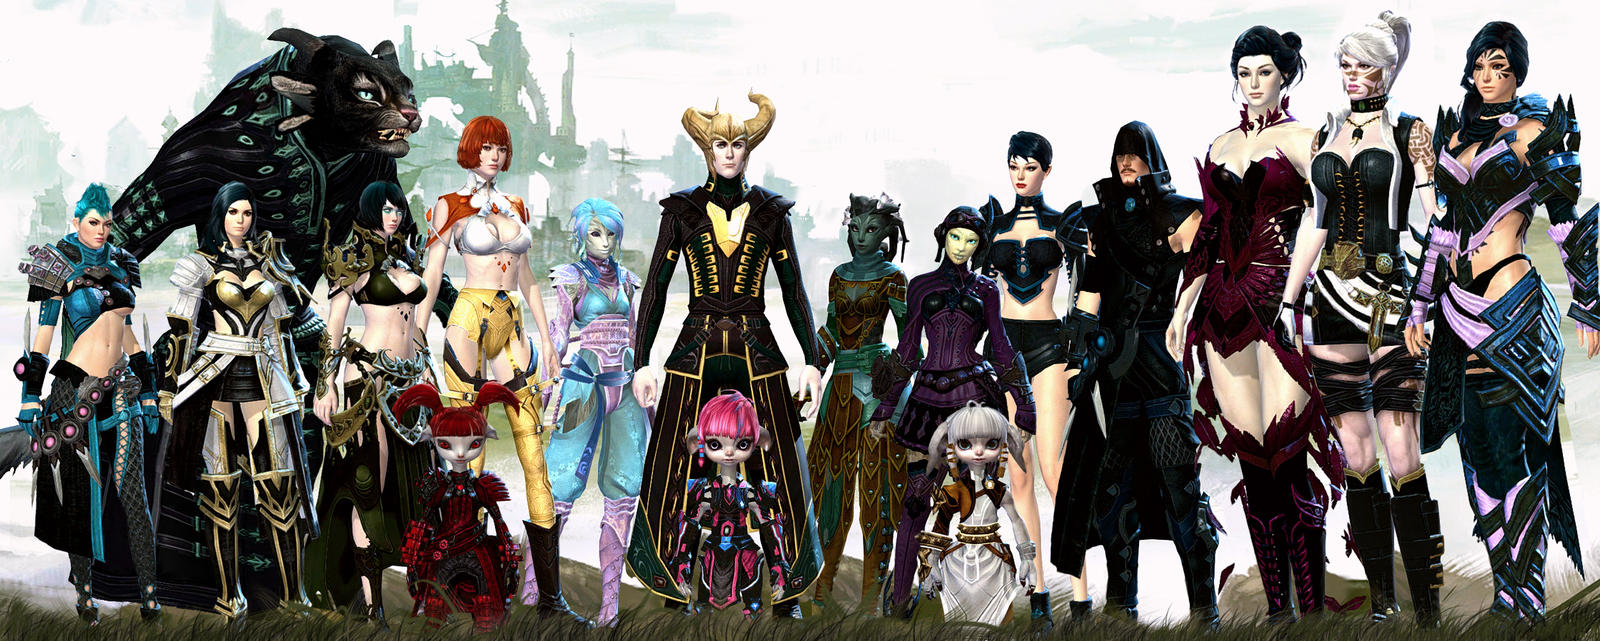 My Guild Wars 2 Family - Sept14